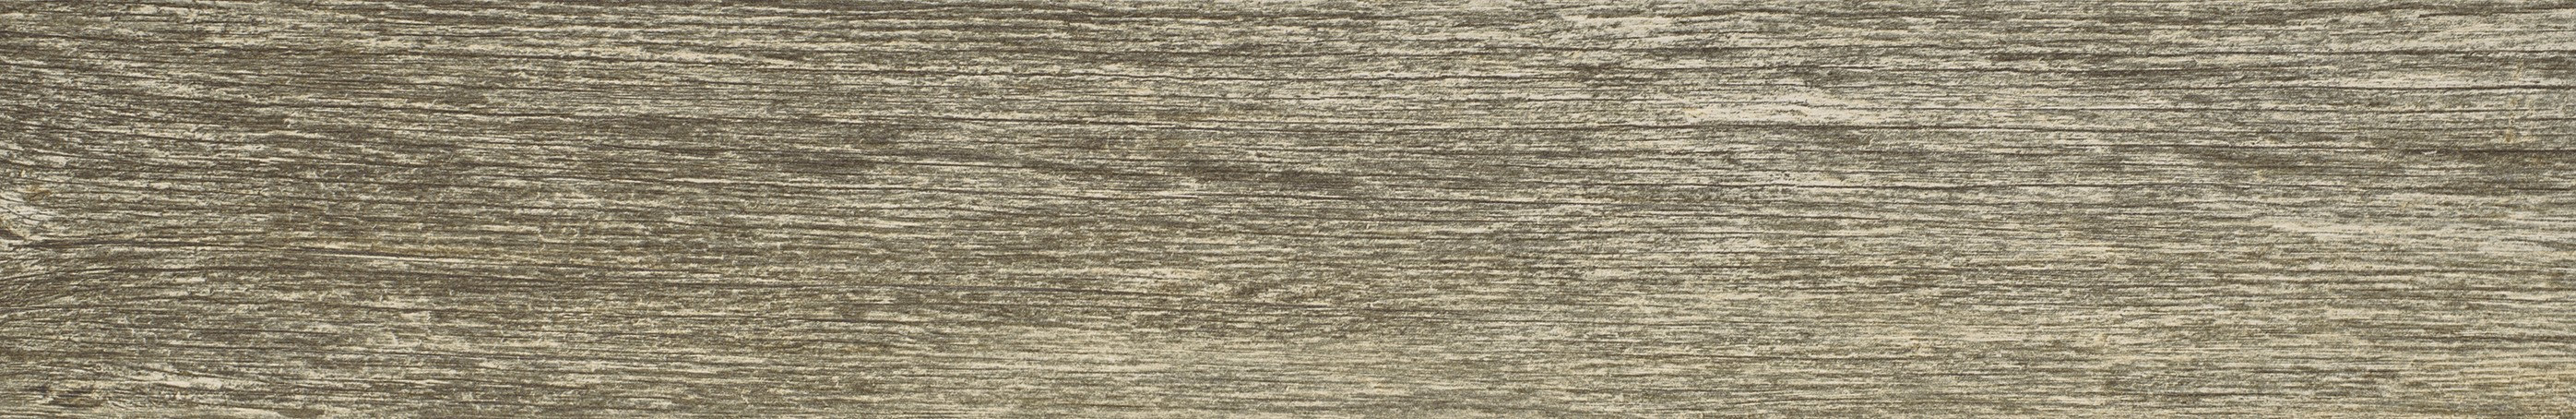 FORESTA Brown struktura 160x985 3